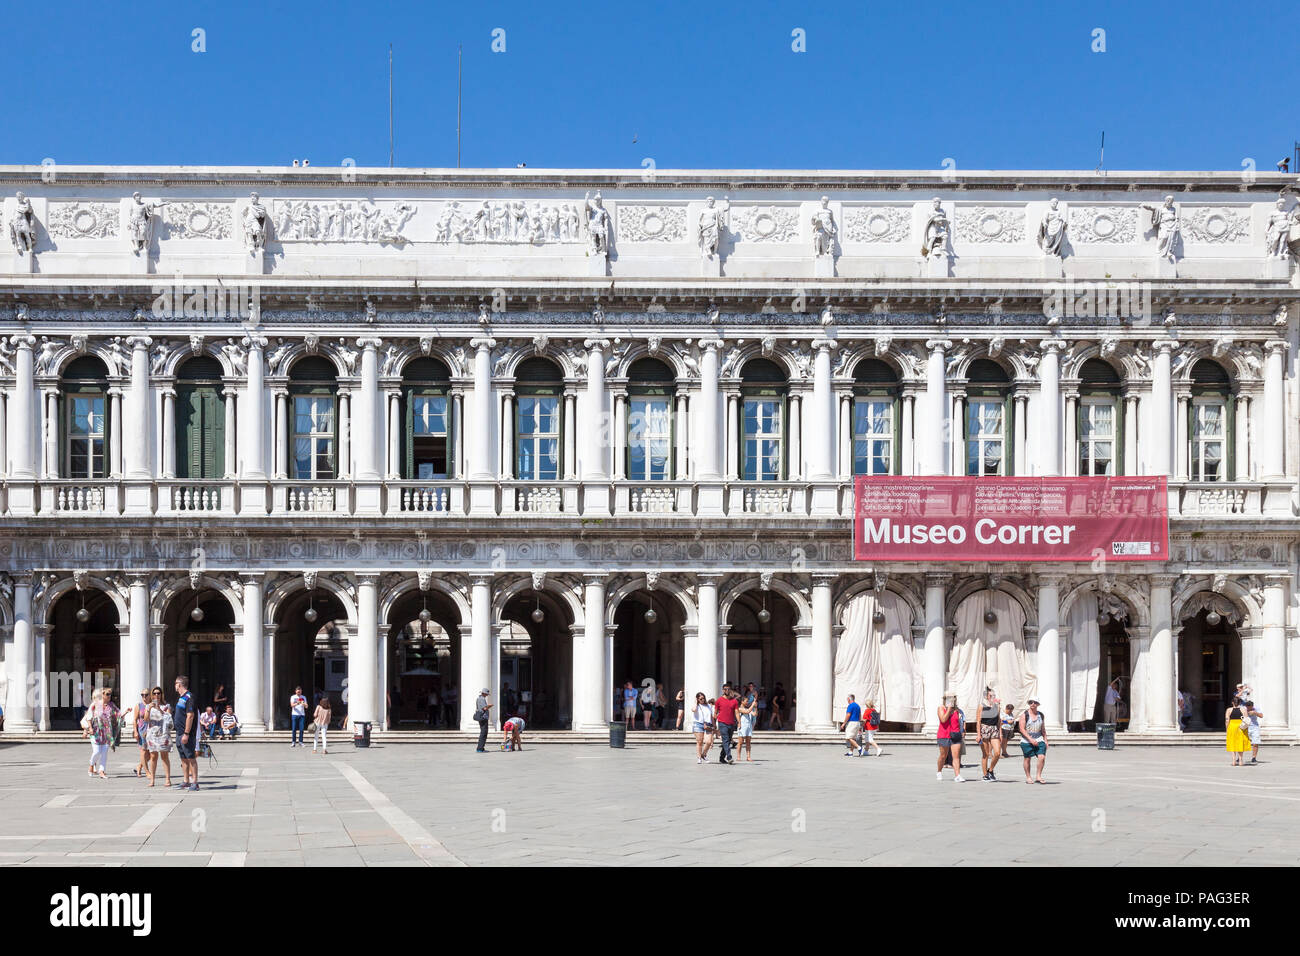 Museo Correr, Correr Museum, Piazza San Marco, Venice, Veneto, Italy. Facade onto St Marks square with sign. Fine Arts and History museum. - Stock Image